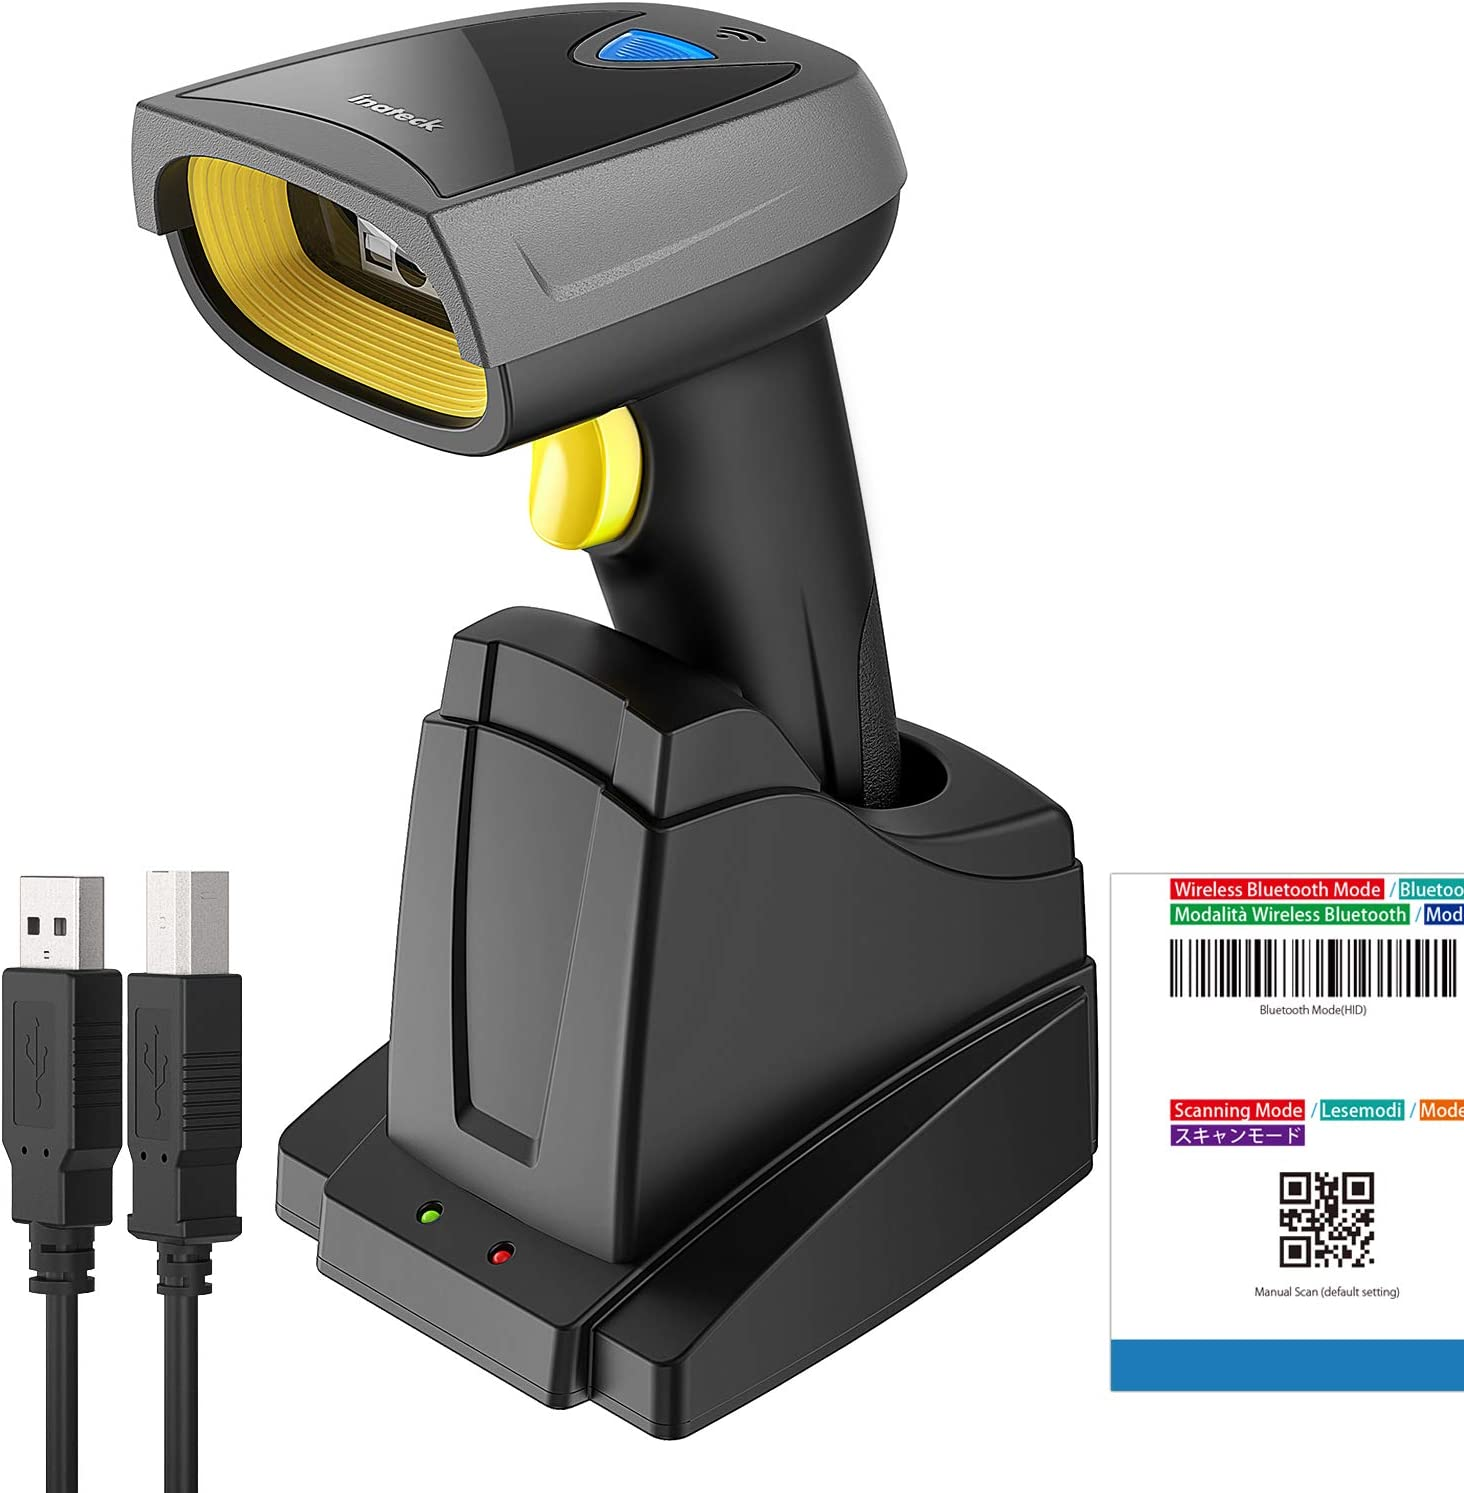 Inateck Barcode Scanner Wireless Automatic Scanning 35M Range 2600mAh Battery